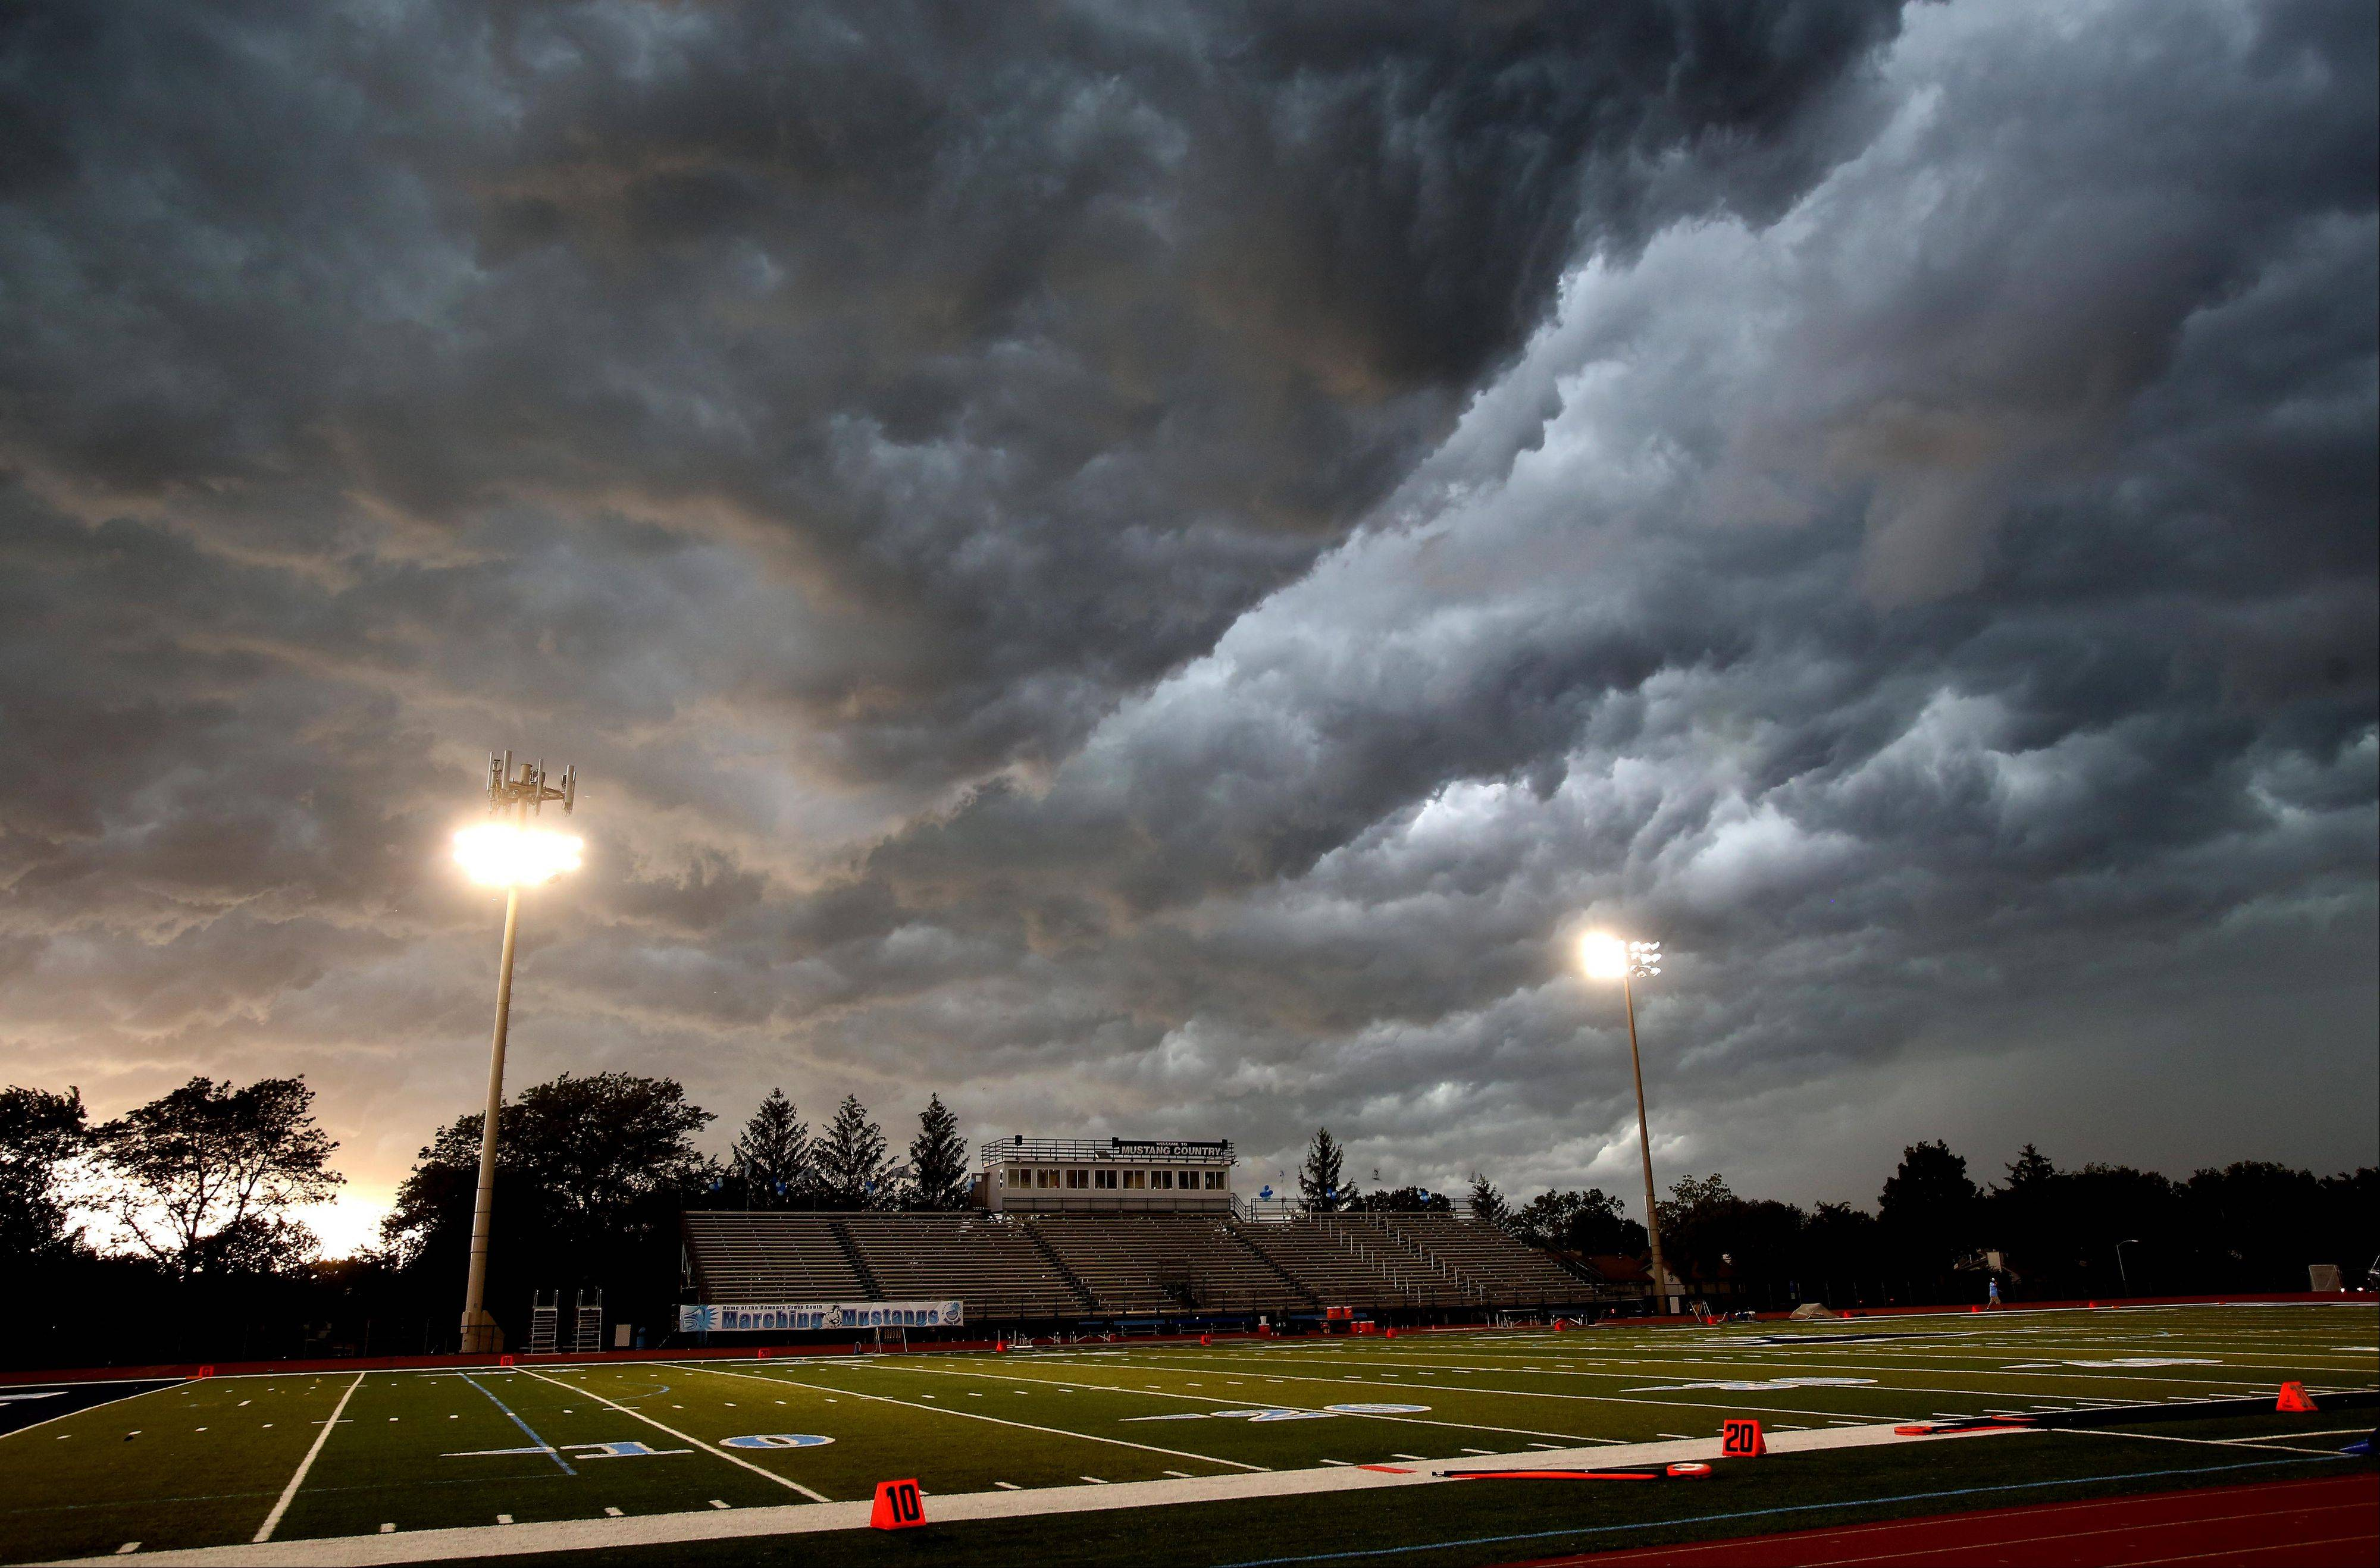 Storm clouds move over an empty football field after the stadium was cleared for the Benet vs. Downers Grove South sophmore football game on Friday in Downers Grove.